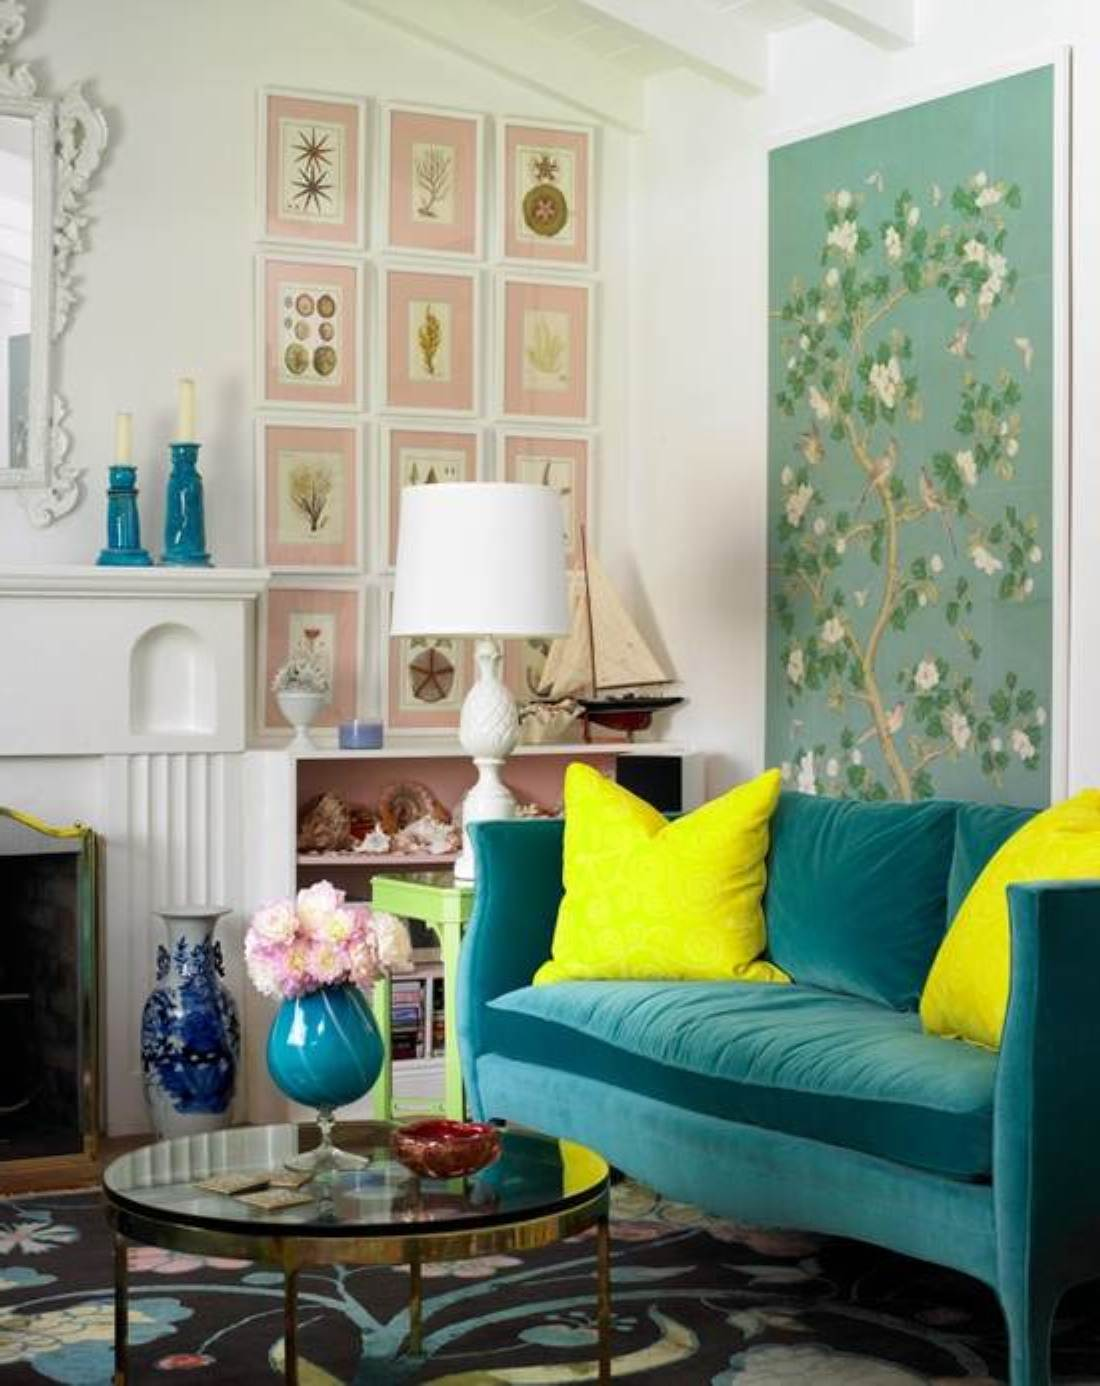 30 amazing small spaces living room design ideas - Living room design ideas and photos ...